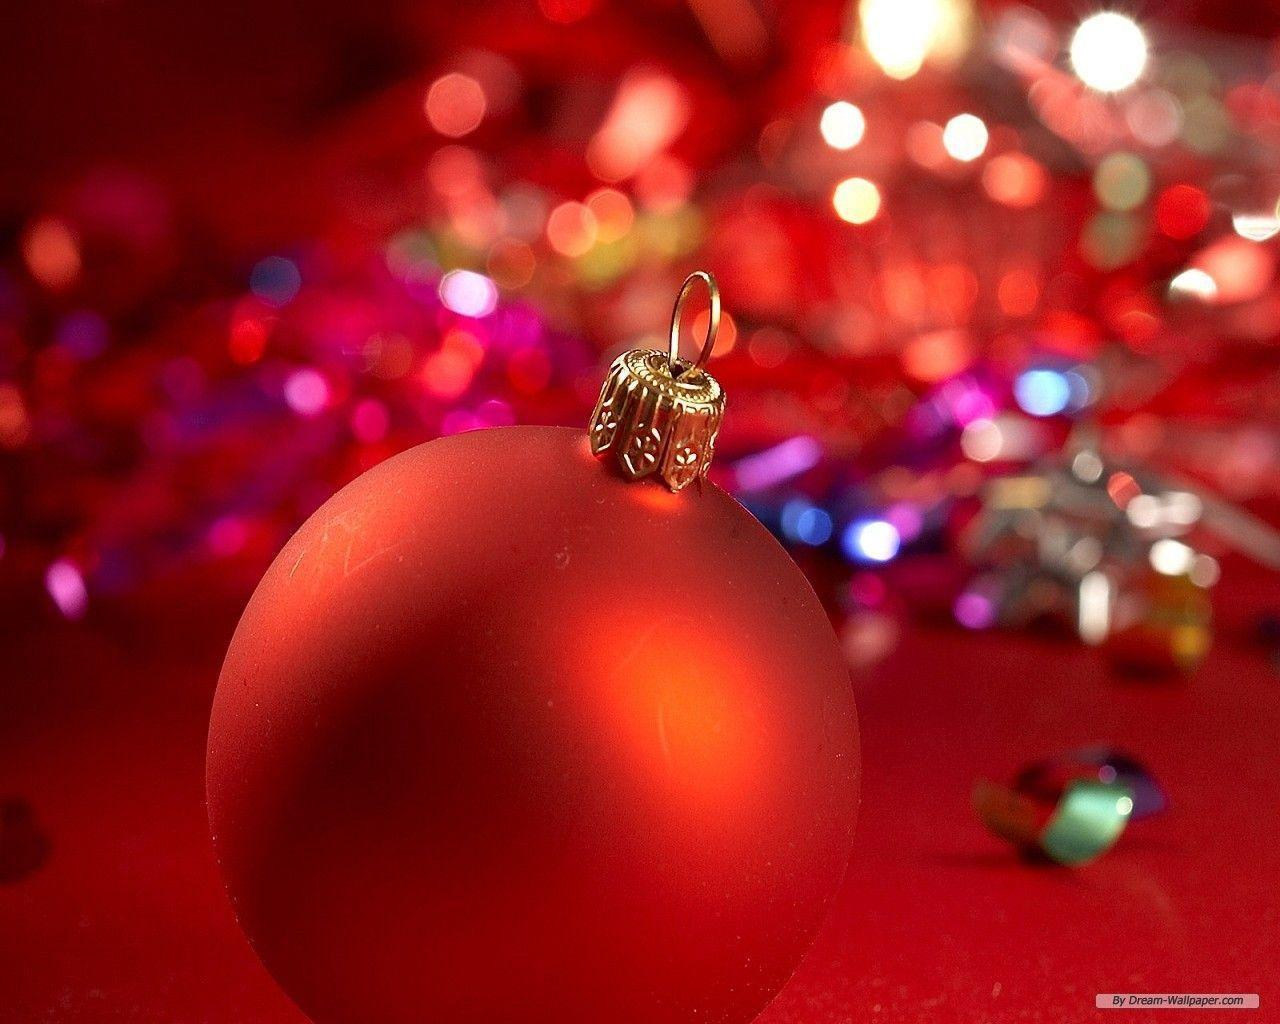 free wallpaper holidays - photo #7